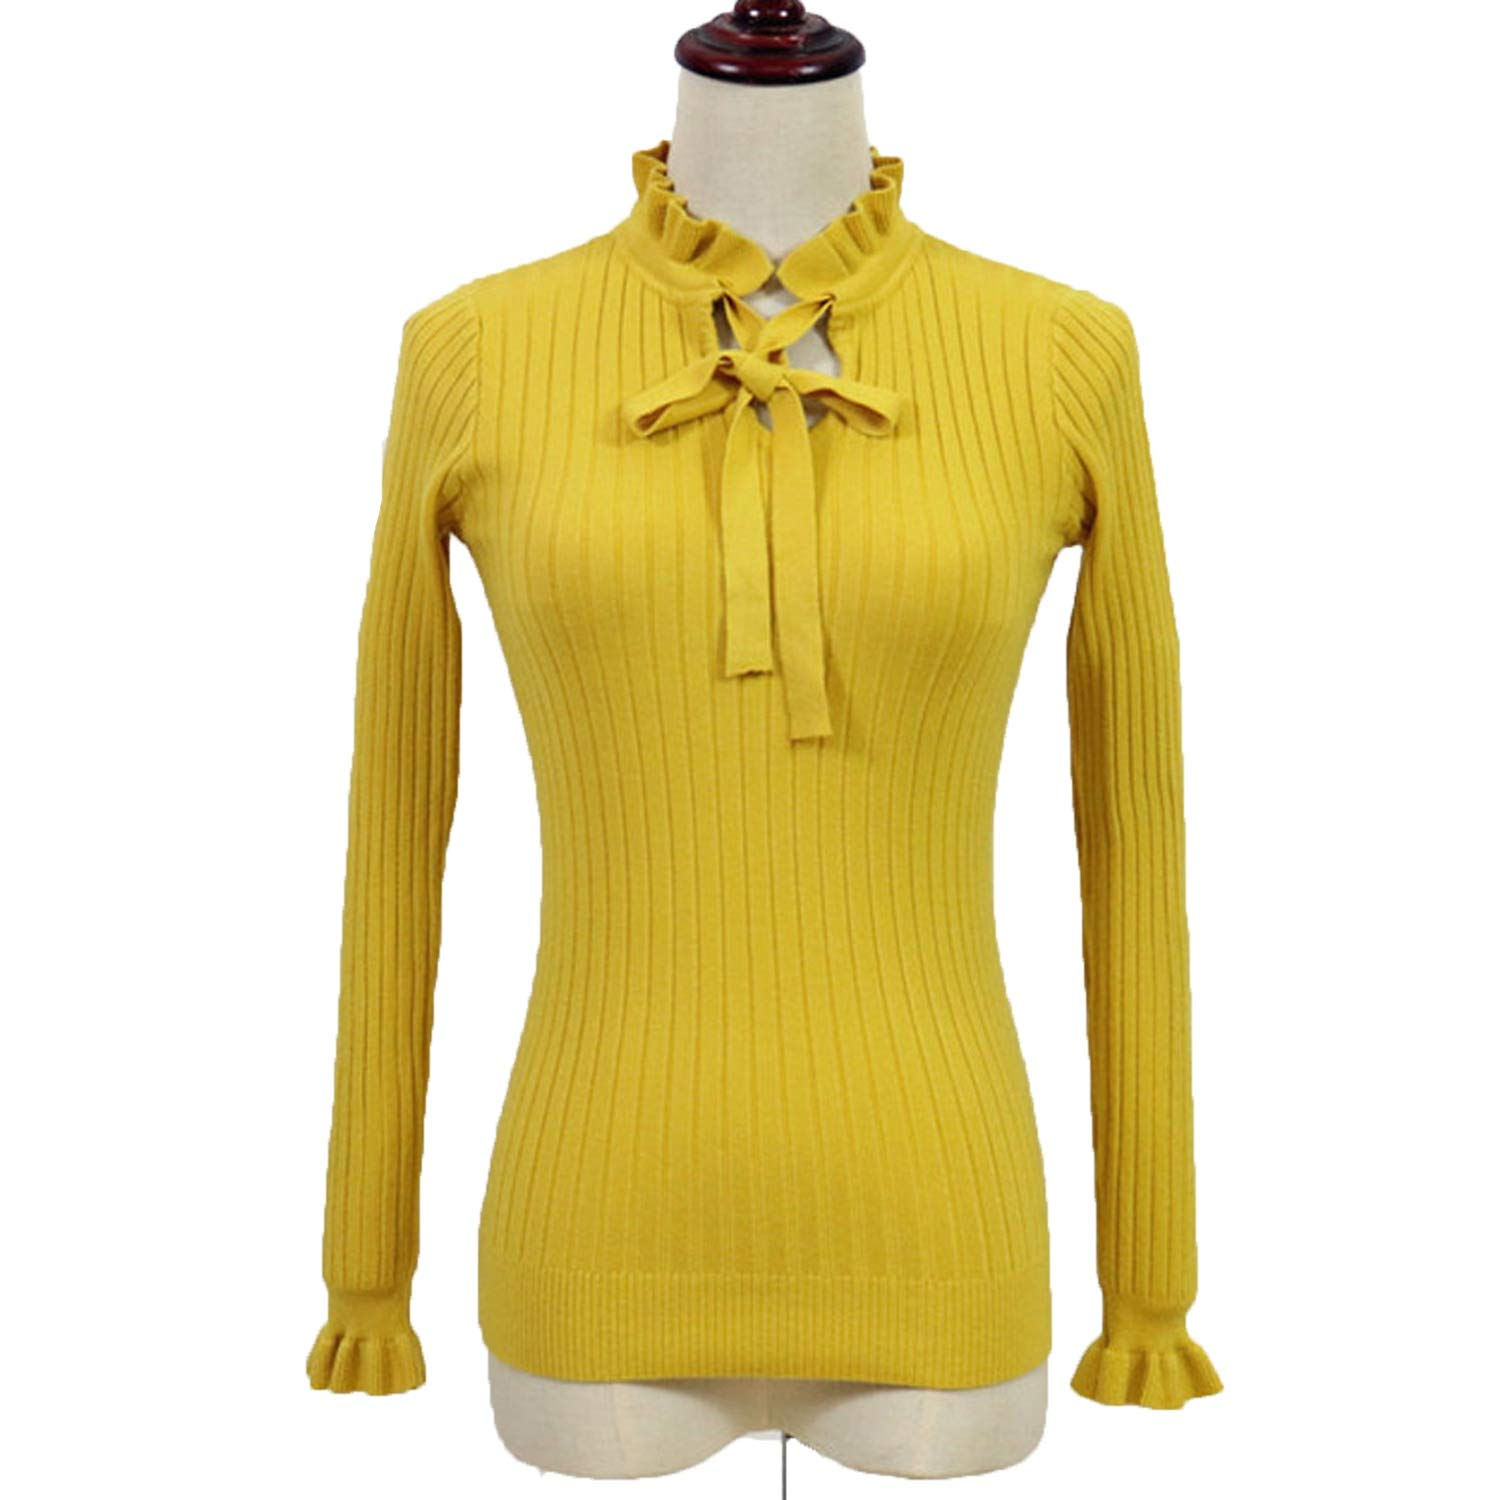 Casual Slim Sweater Women Knitting Pullover Lace Up Long Flare Sleeve Ruffle Sweater,Yellow,One Size